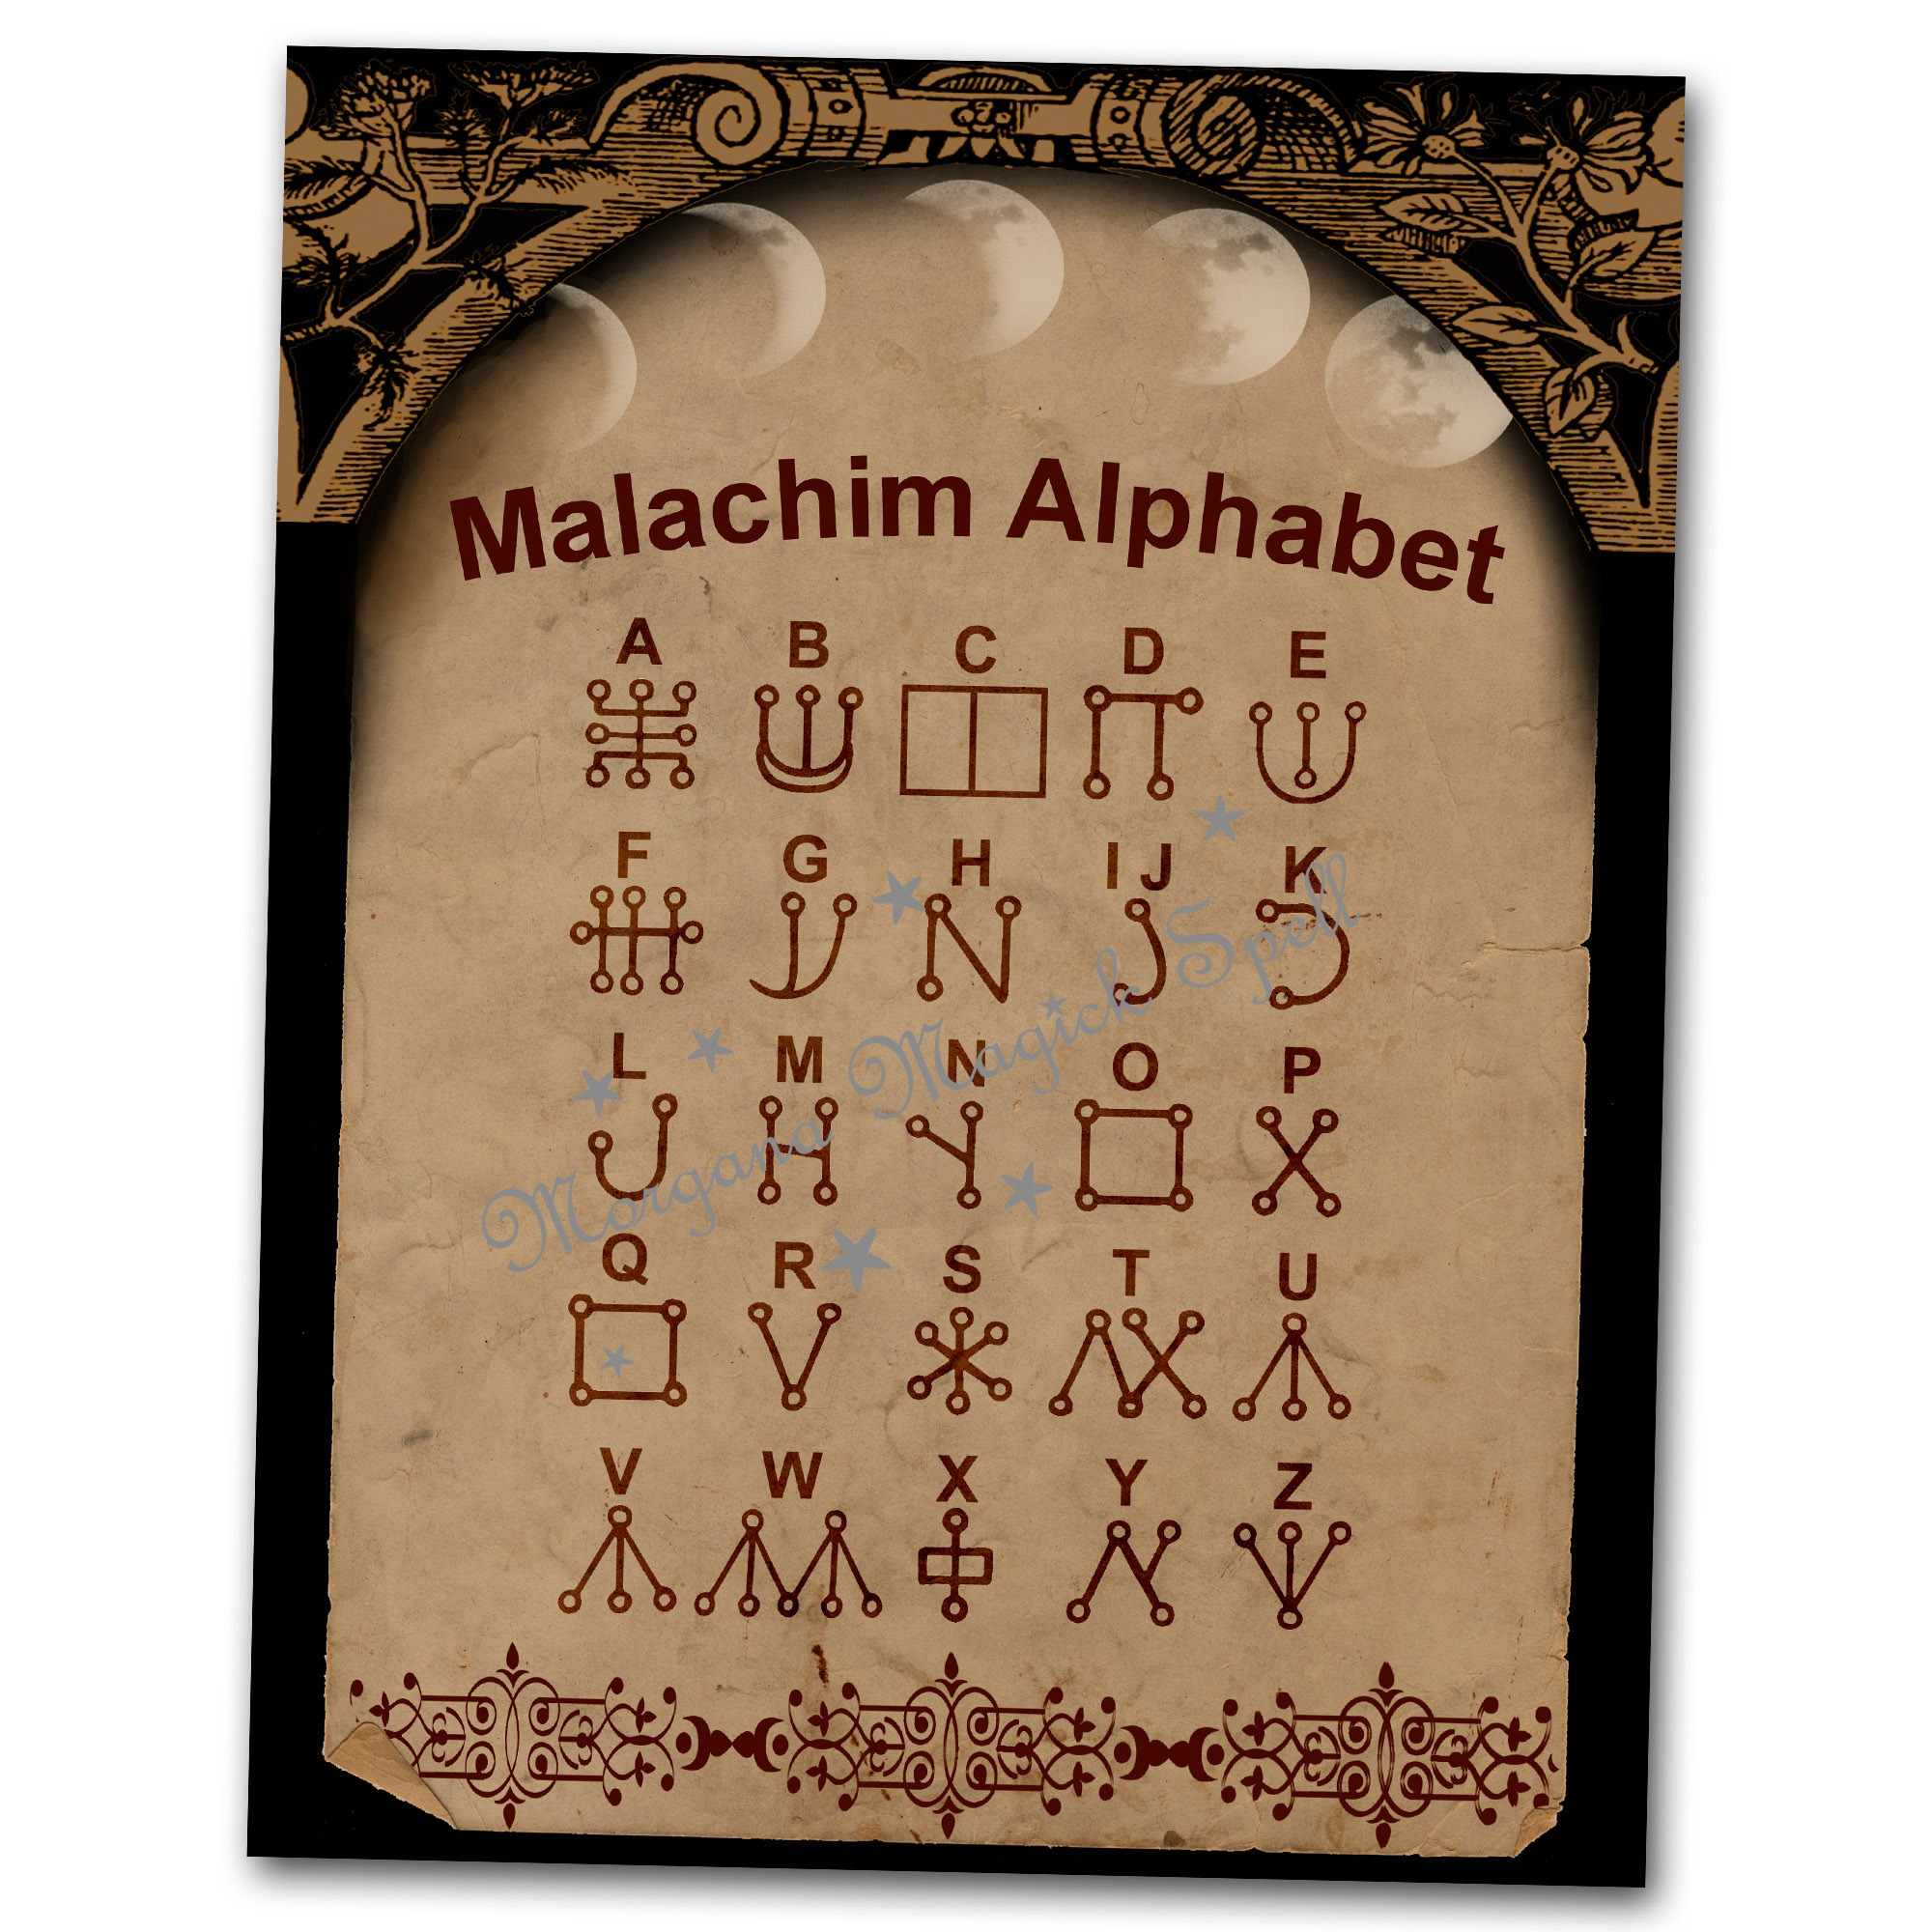 THE MALACHIM ALPHABET